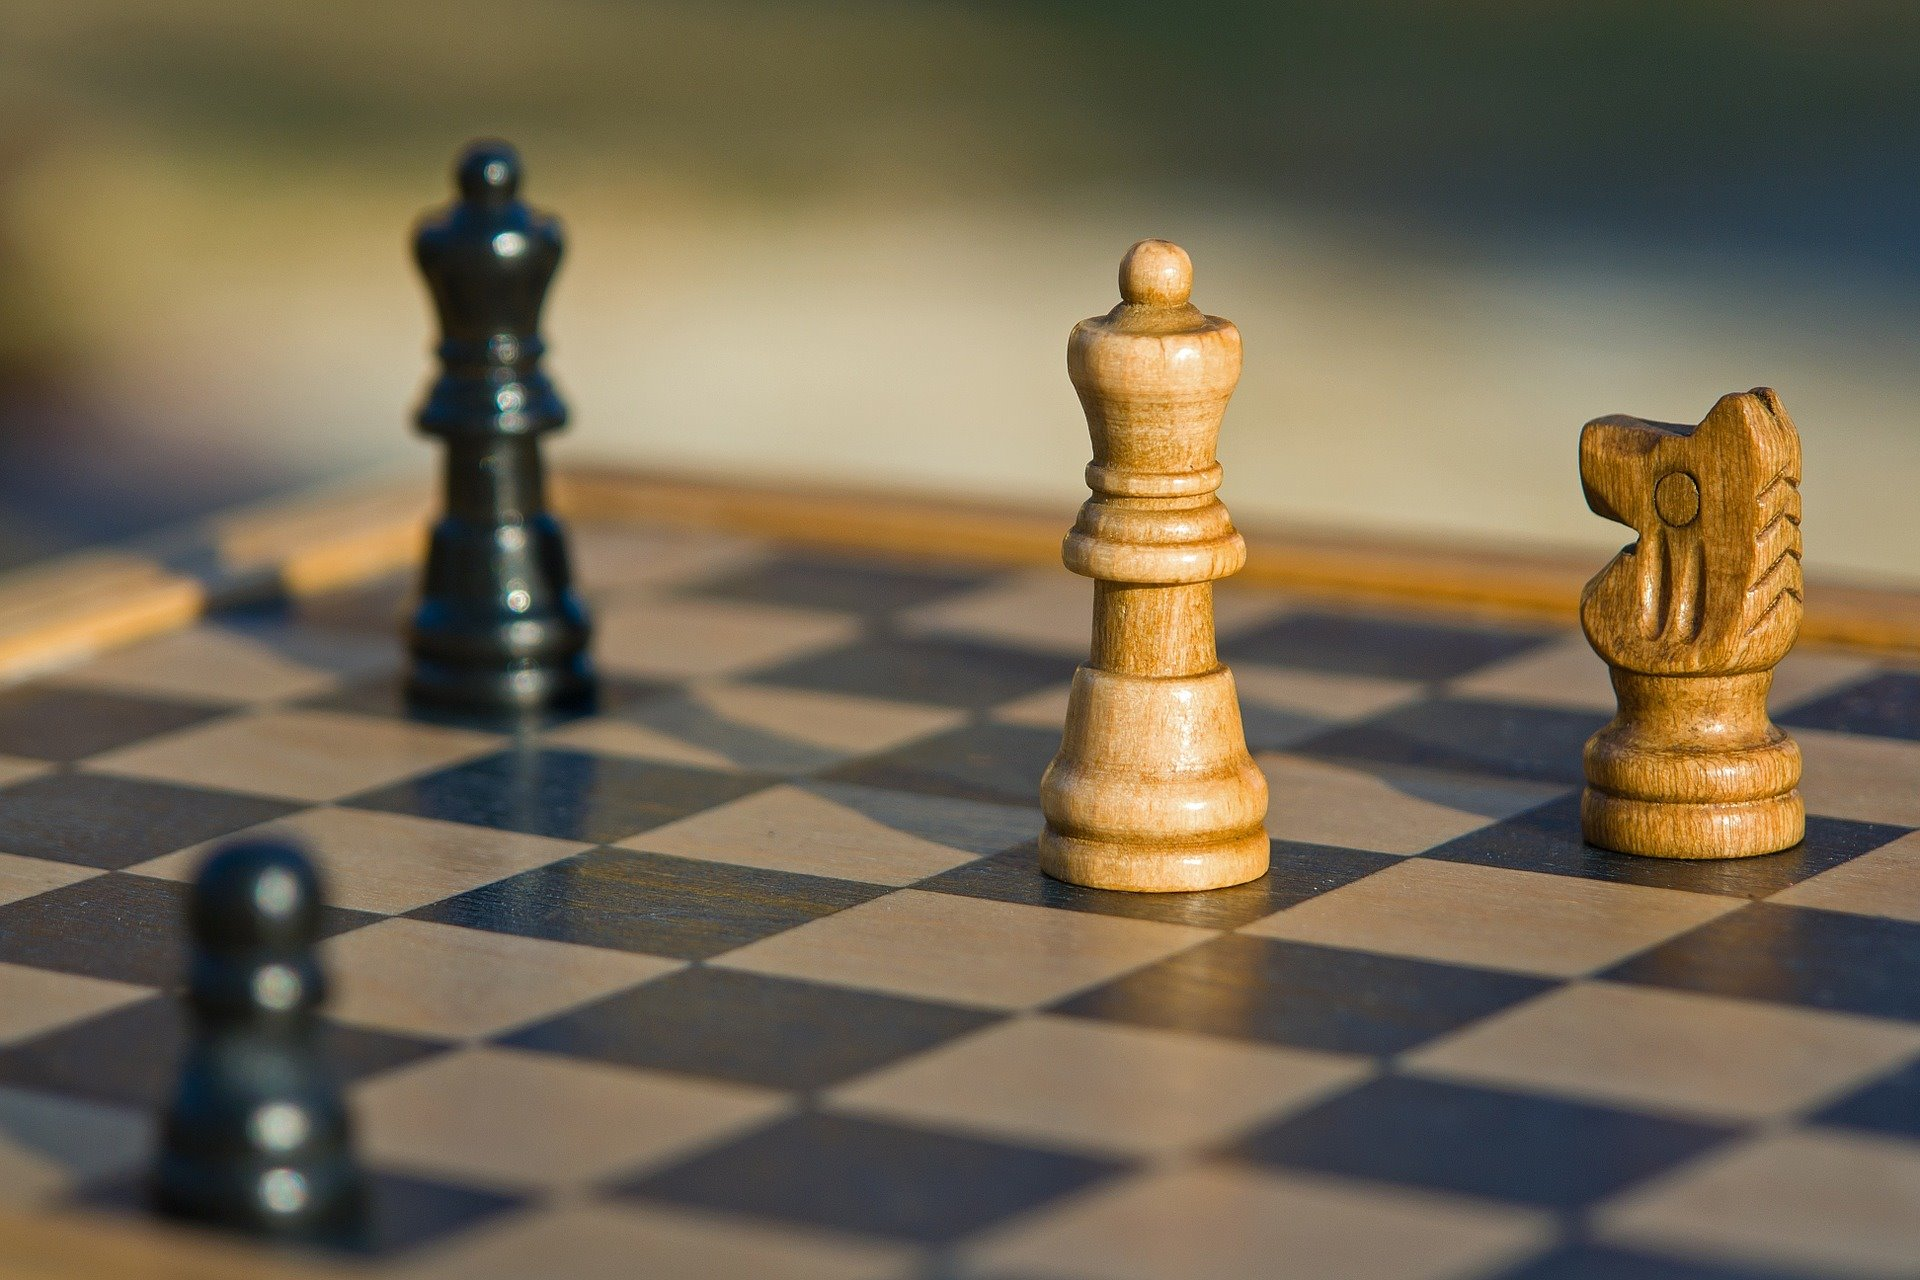 Social media talk about chess Confuses Chess Chat for Racist Rants